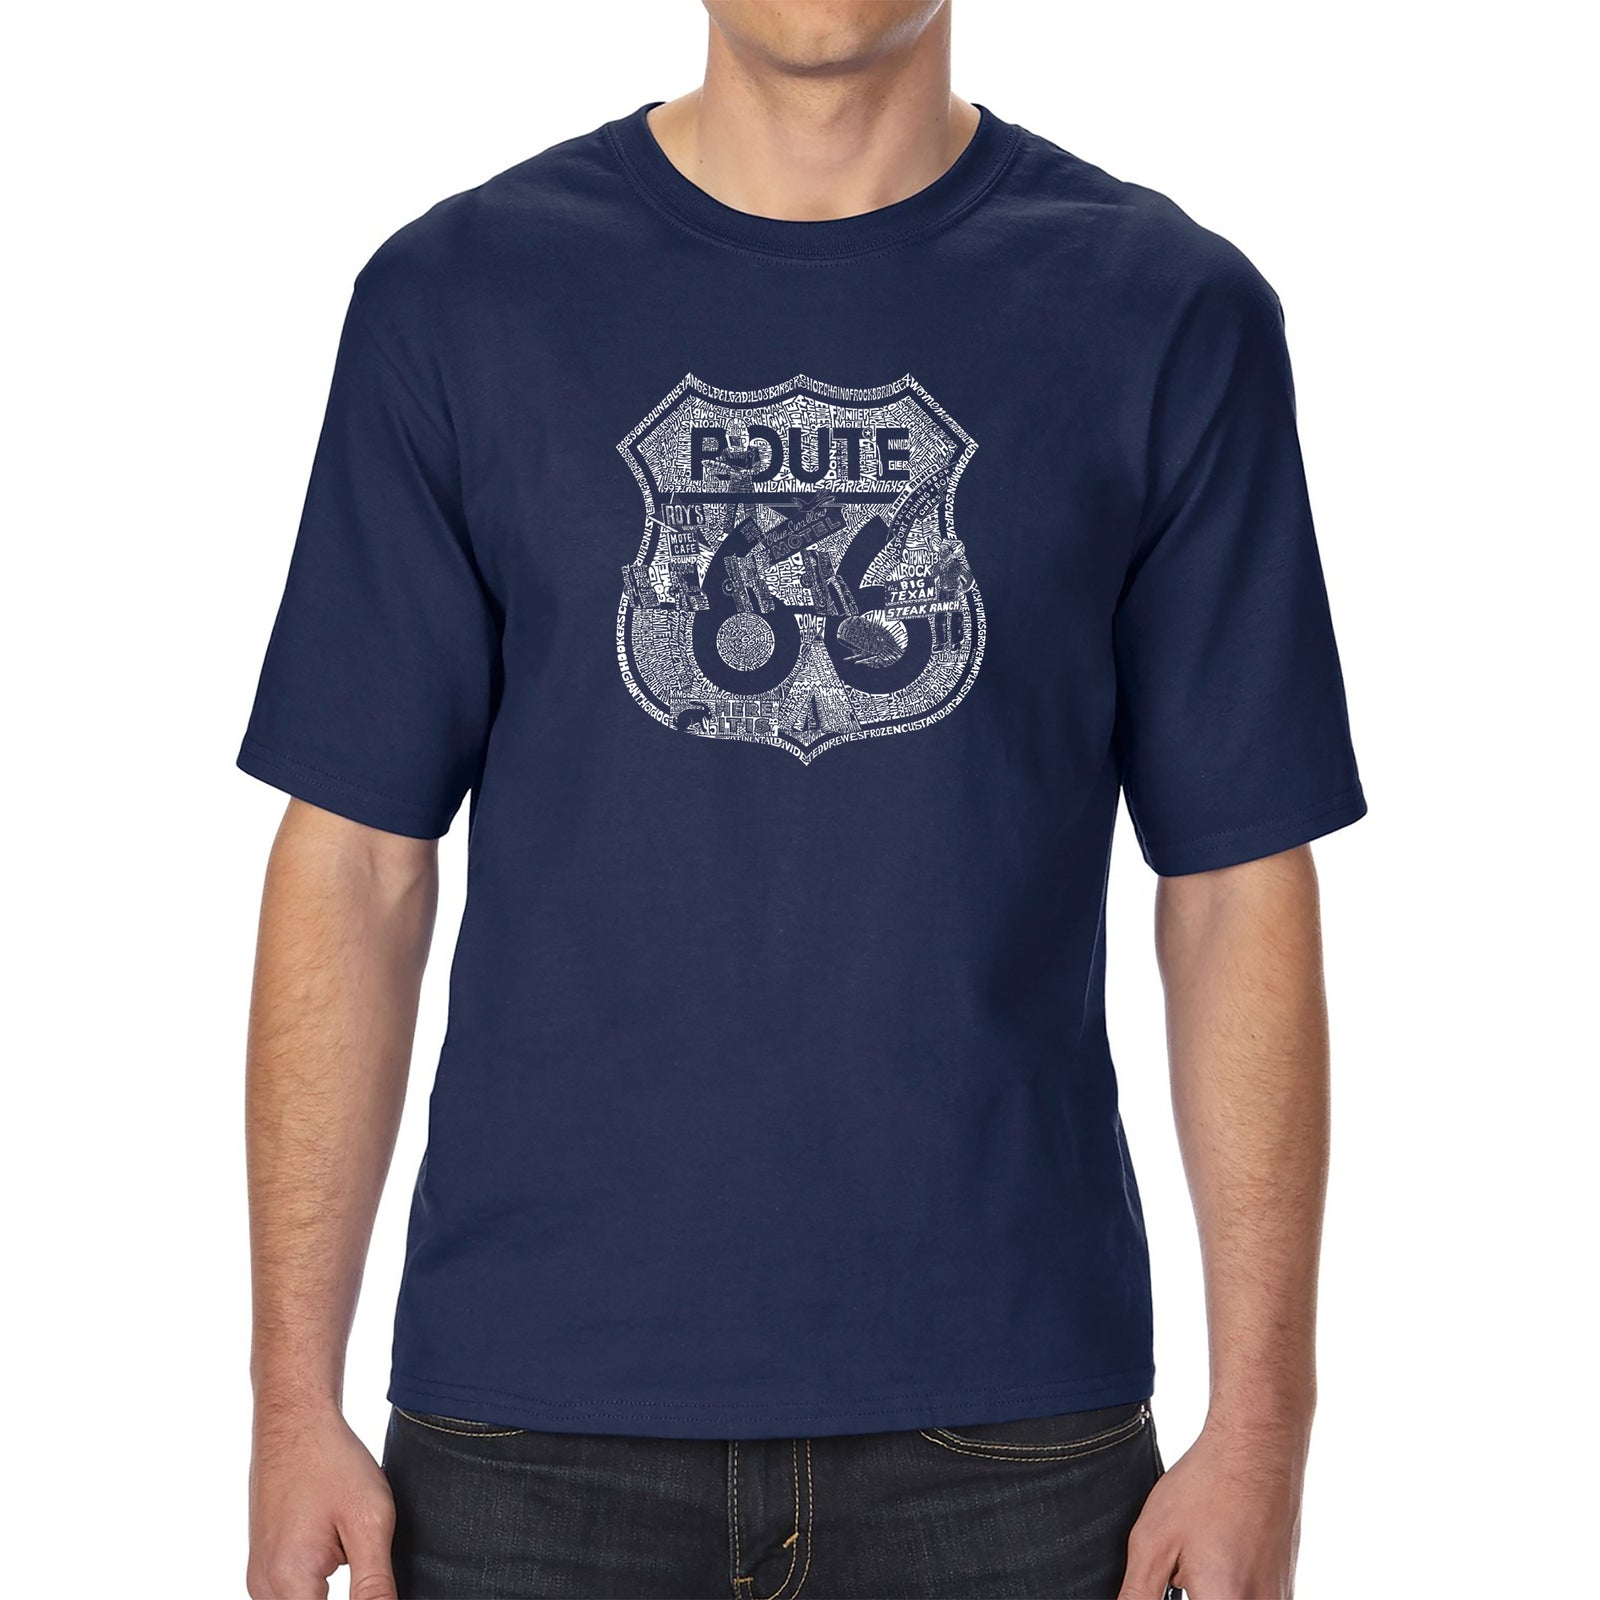 Men's Tall and Long Word Art T-shirt - Stops Along Route 66